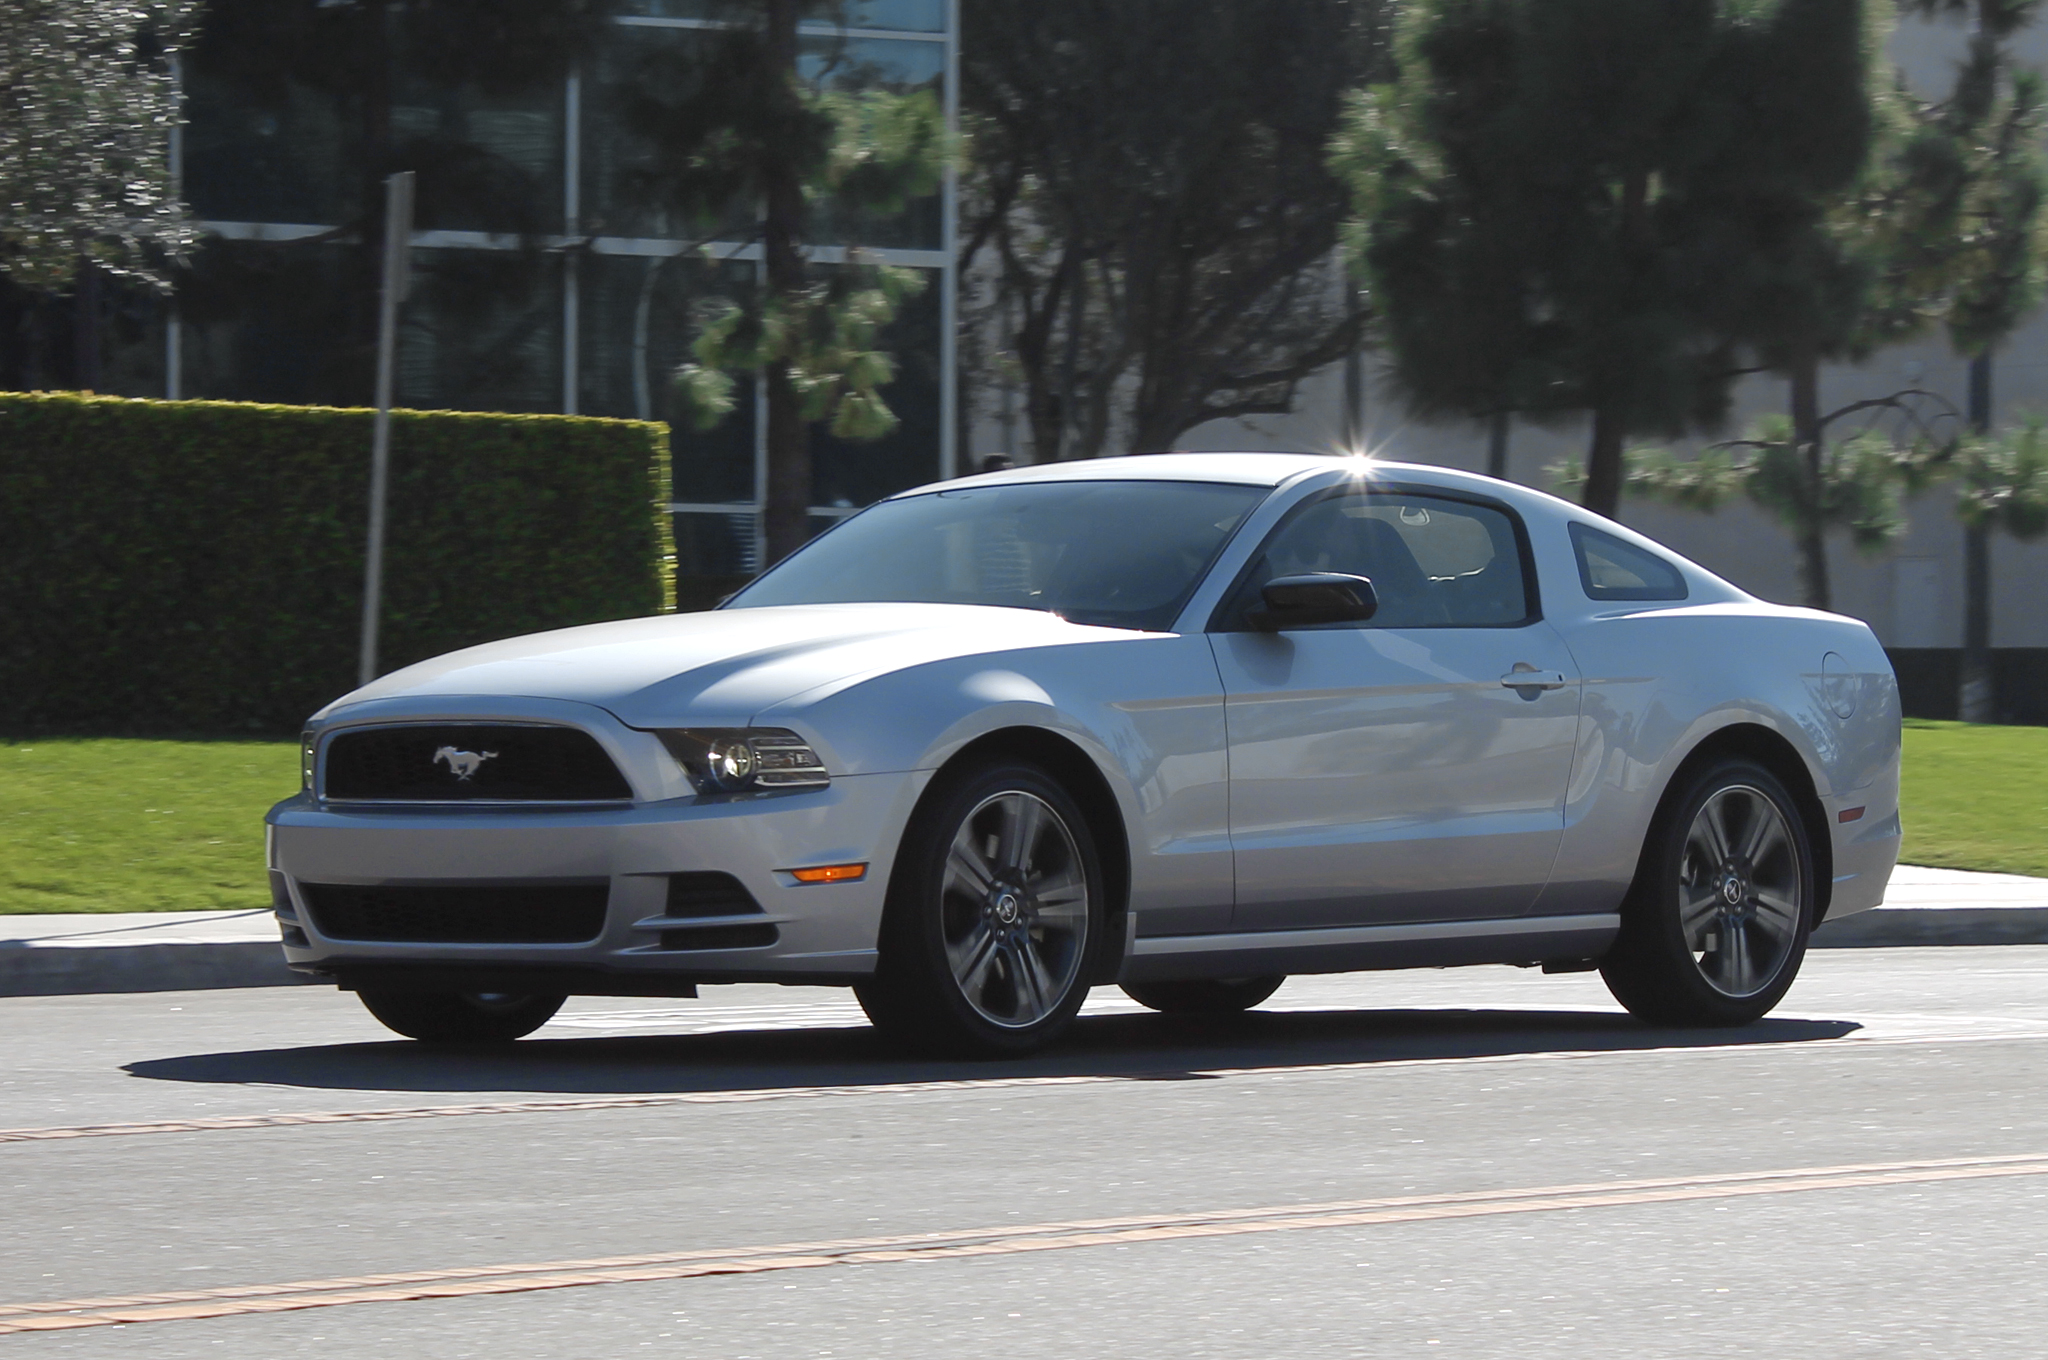 medium resolution of 2014 ford mustang premium v6 performance package first test motortrend go back gt gallery for gt 2000 mustang v6 engine diagram